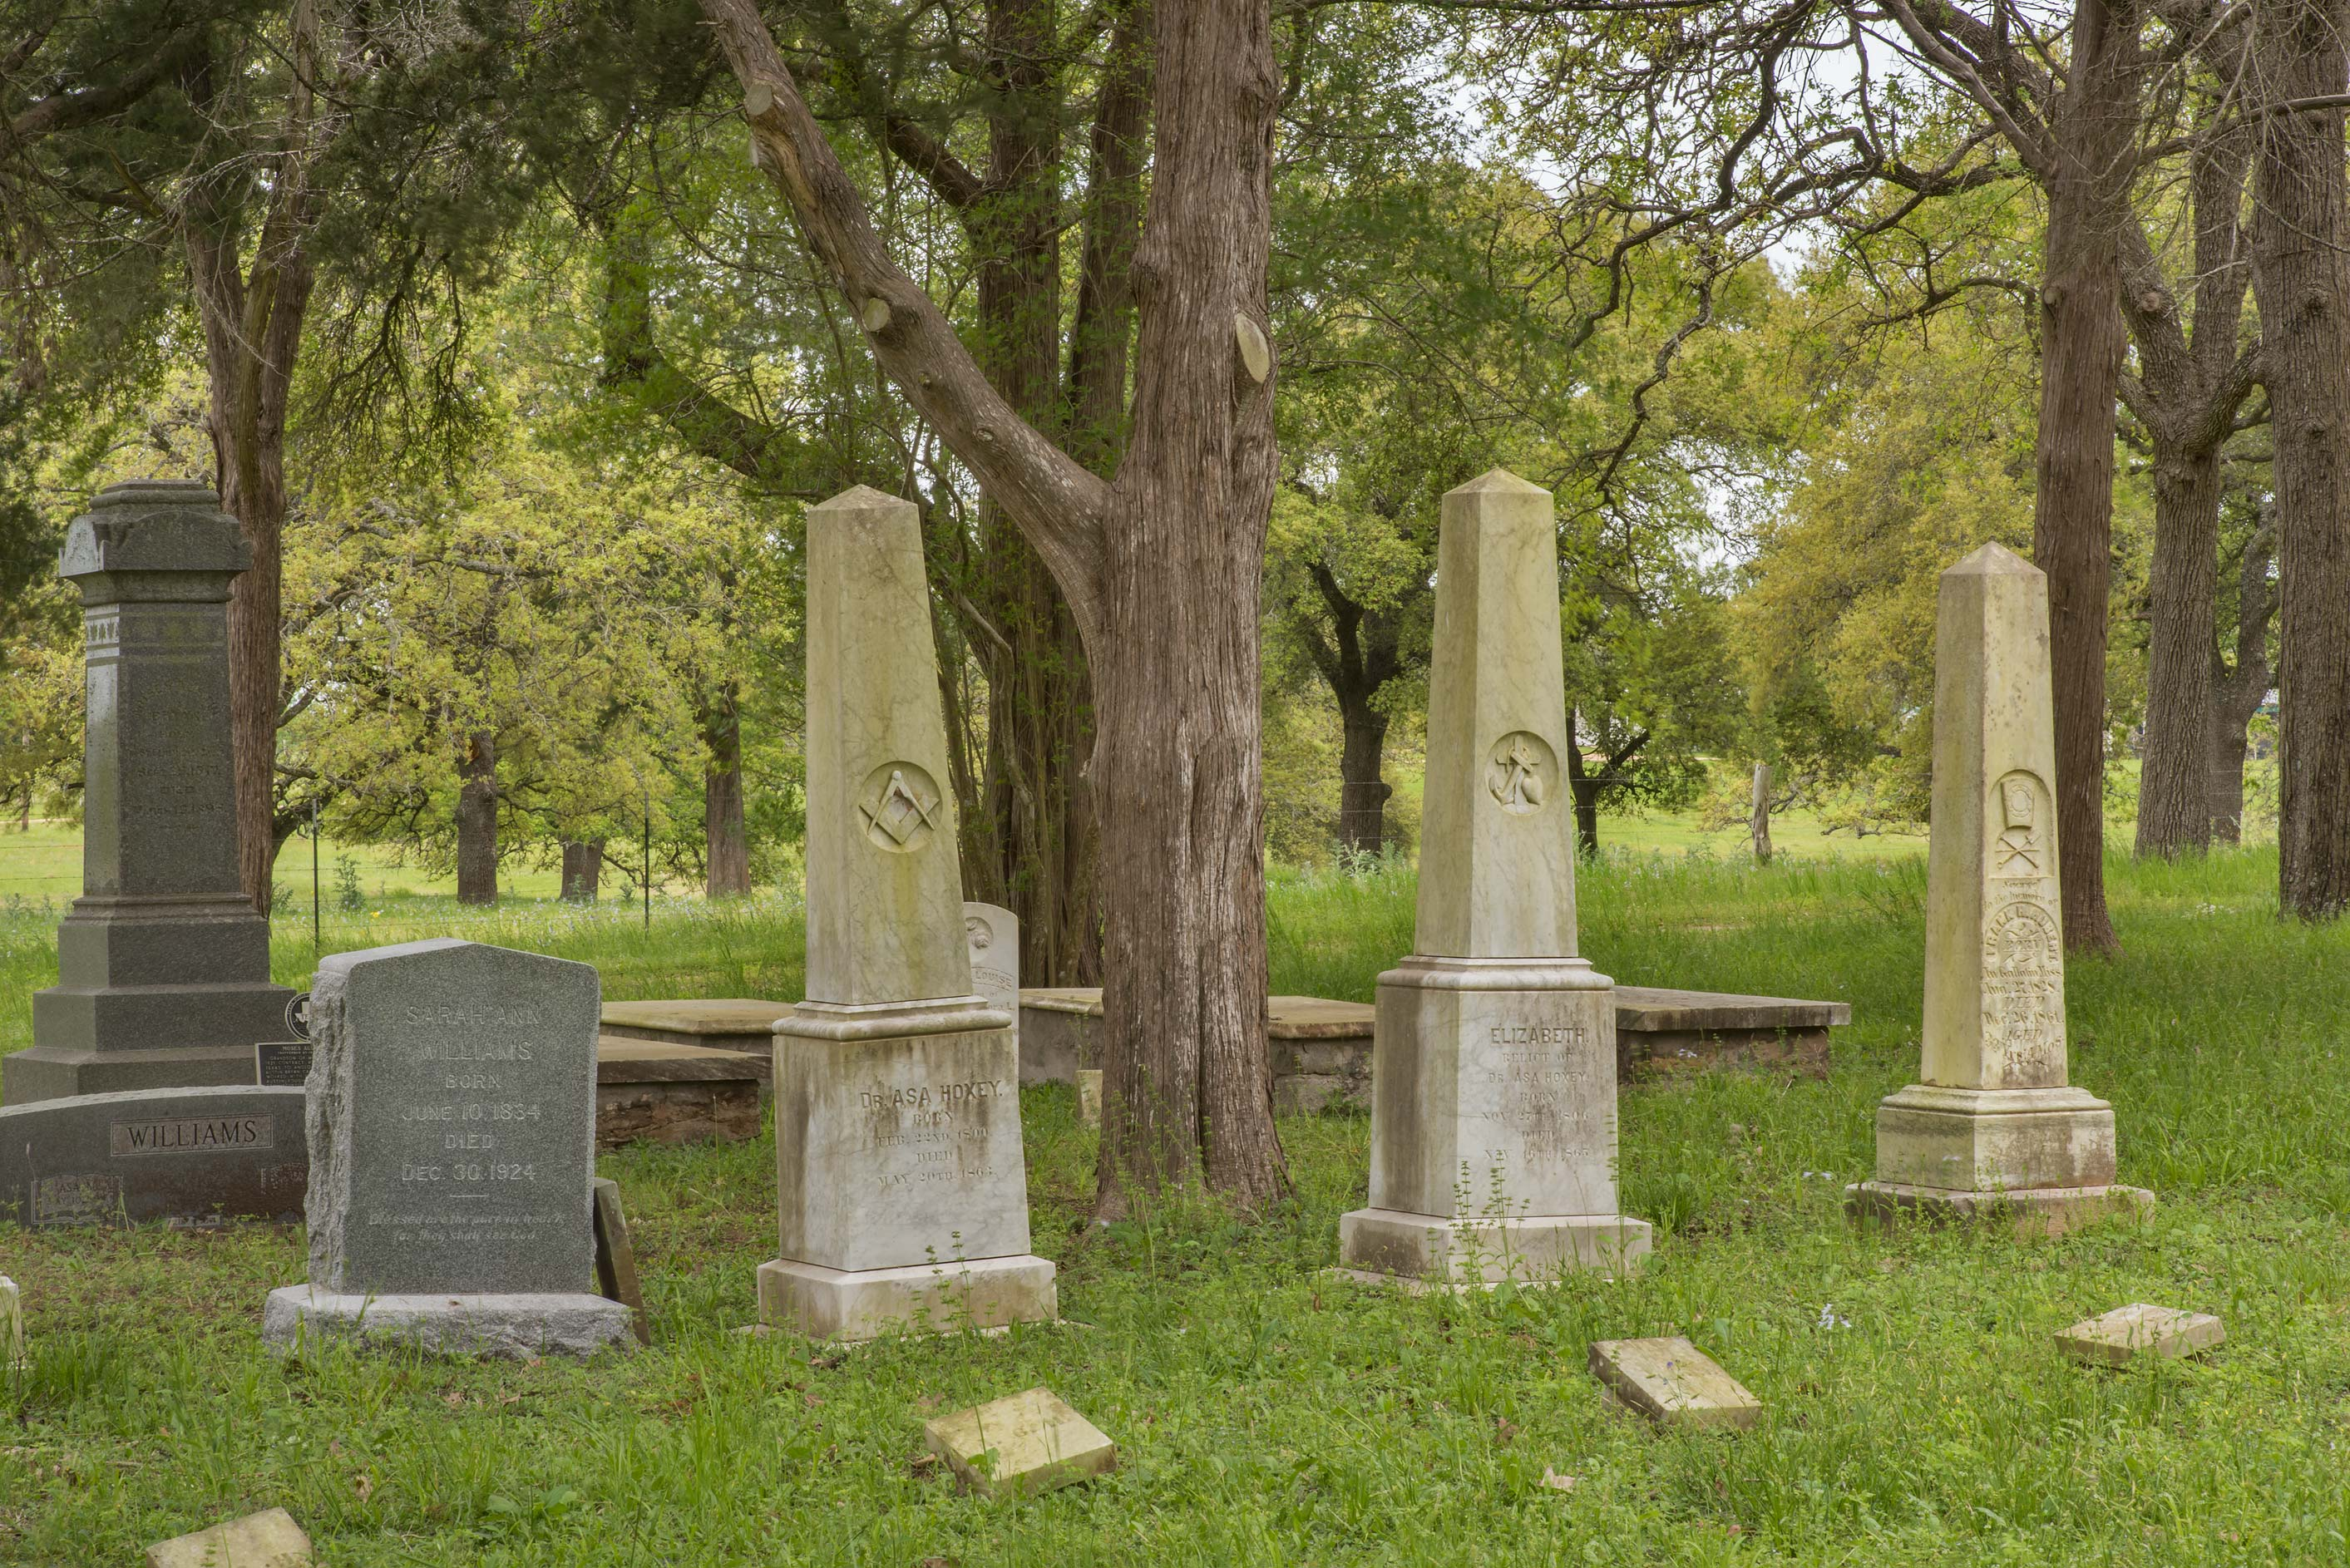 Marble and granite tombs in Historic Independence Cemetery near Independence. Texas